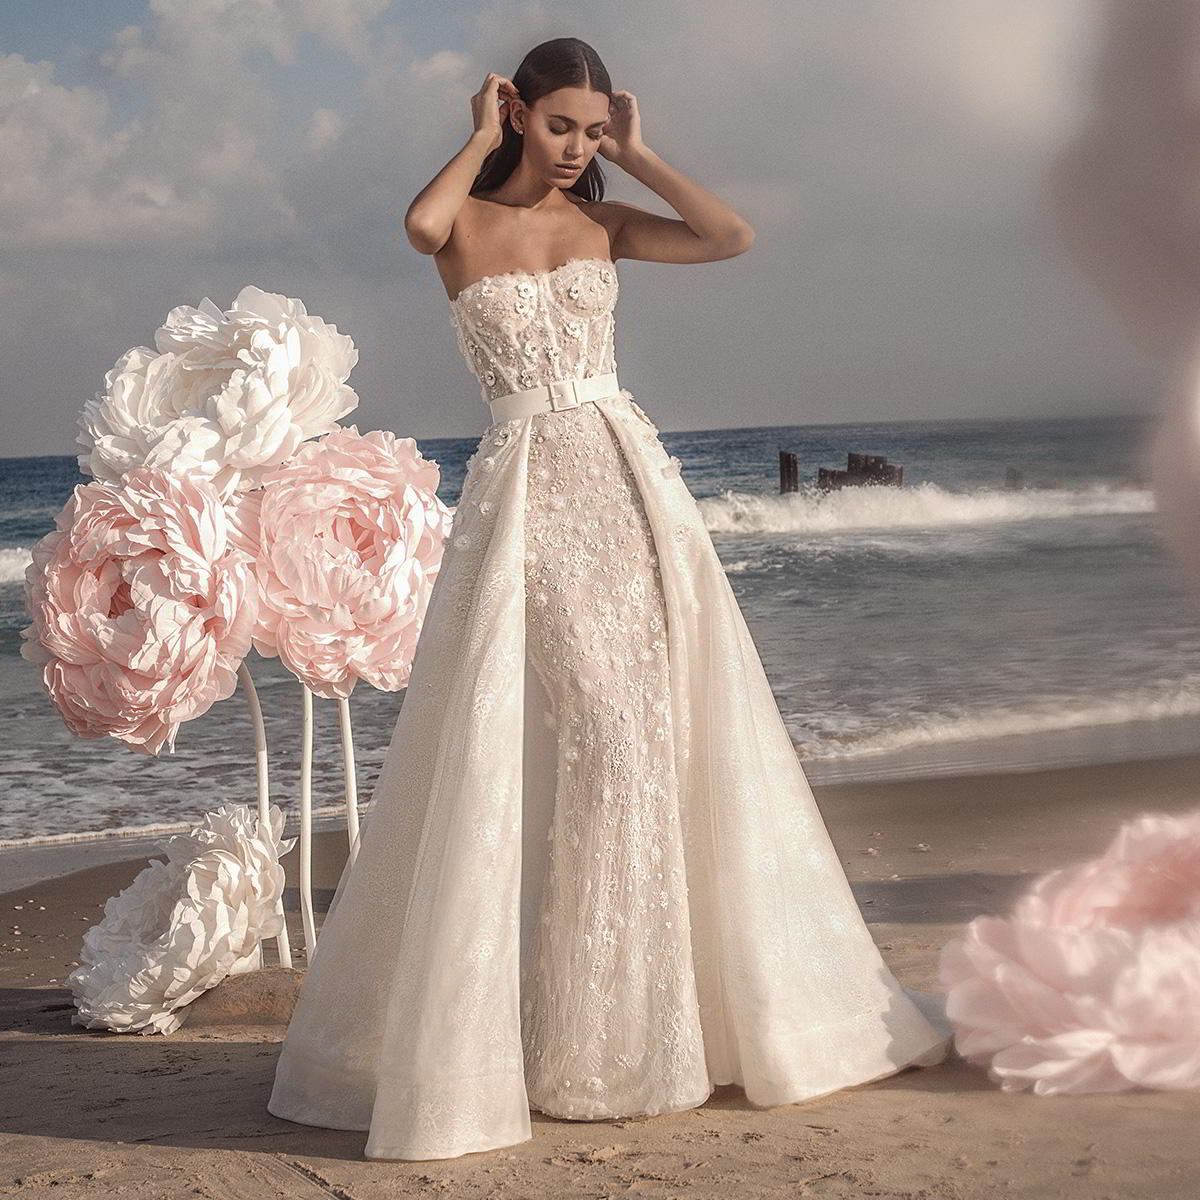 Lee Petra Grebenau 2019 Wedding Dresses